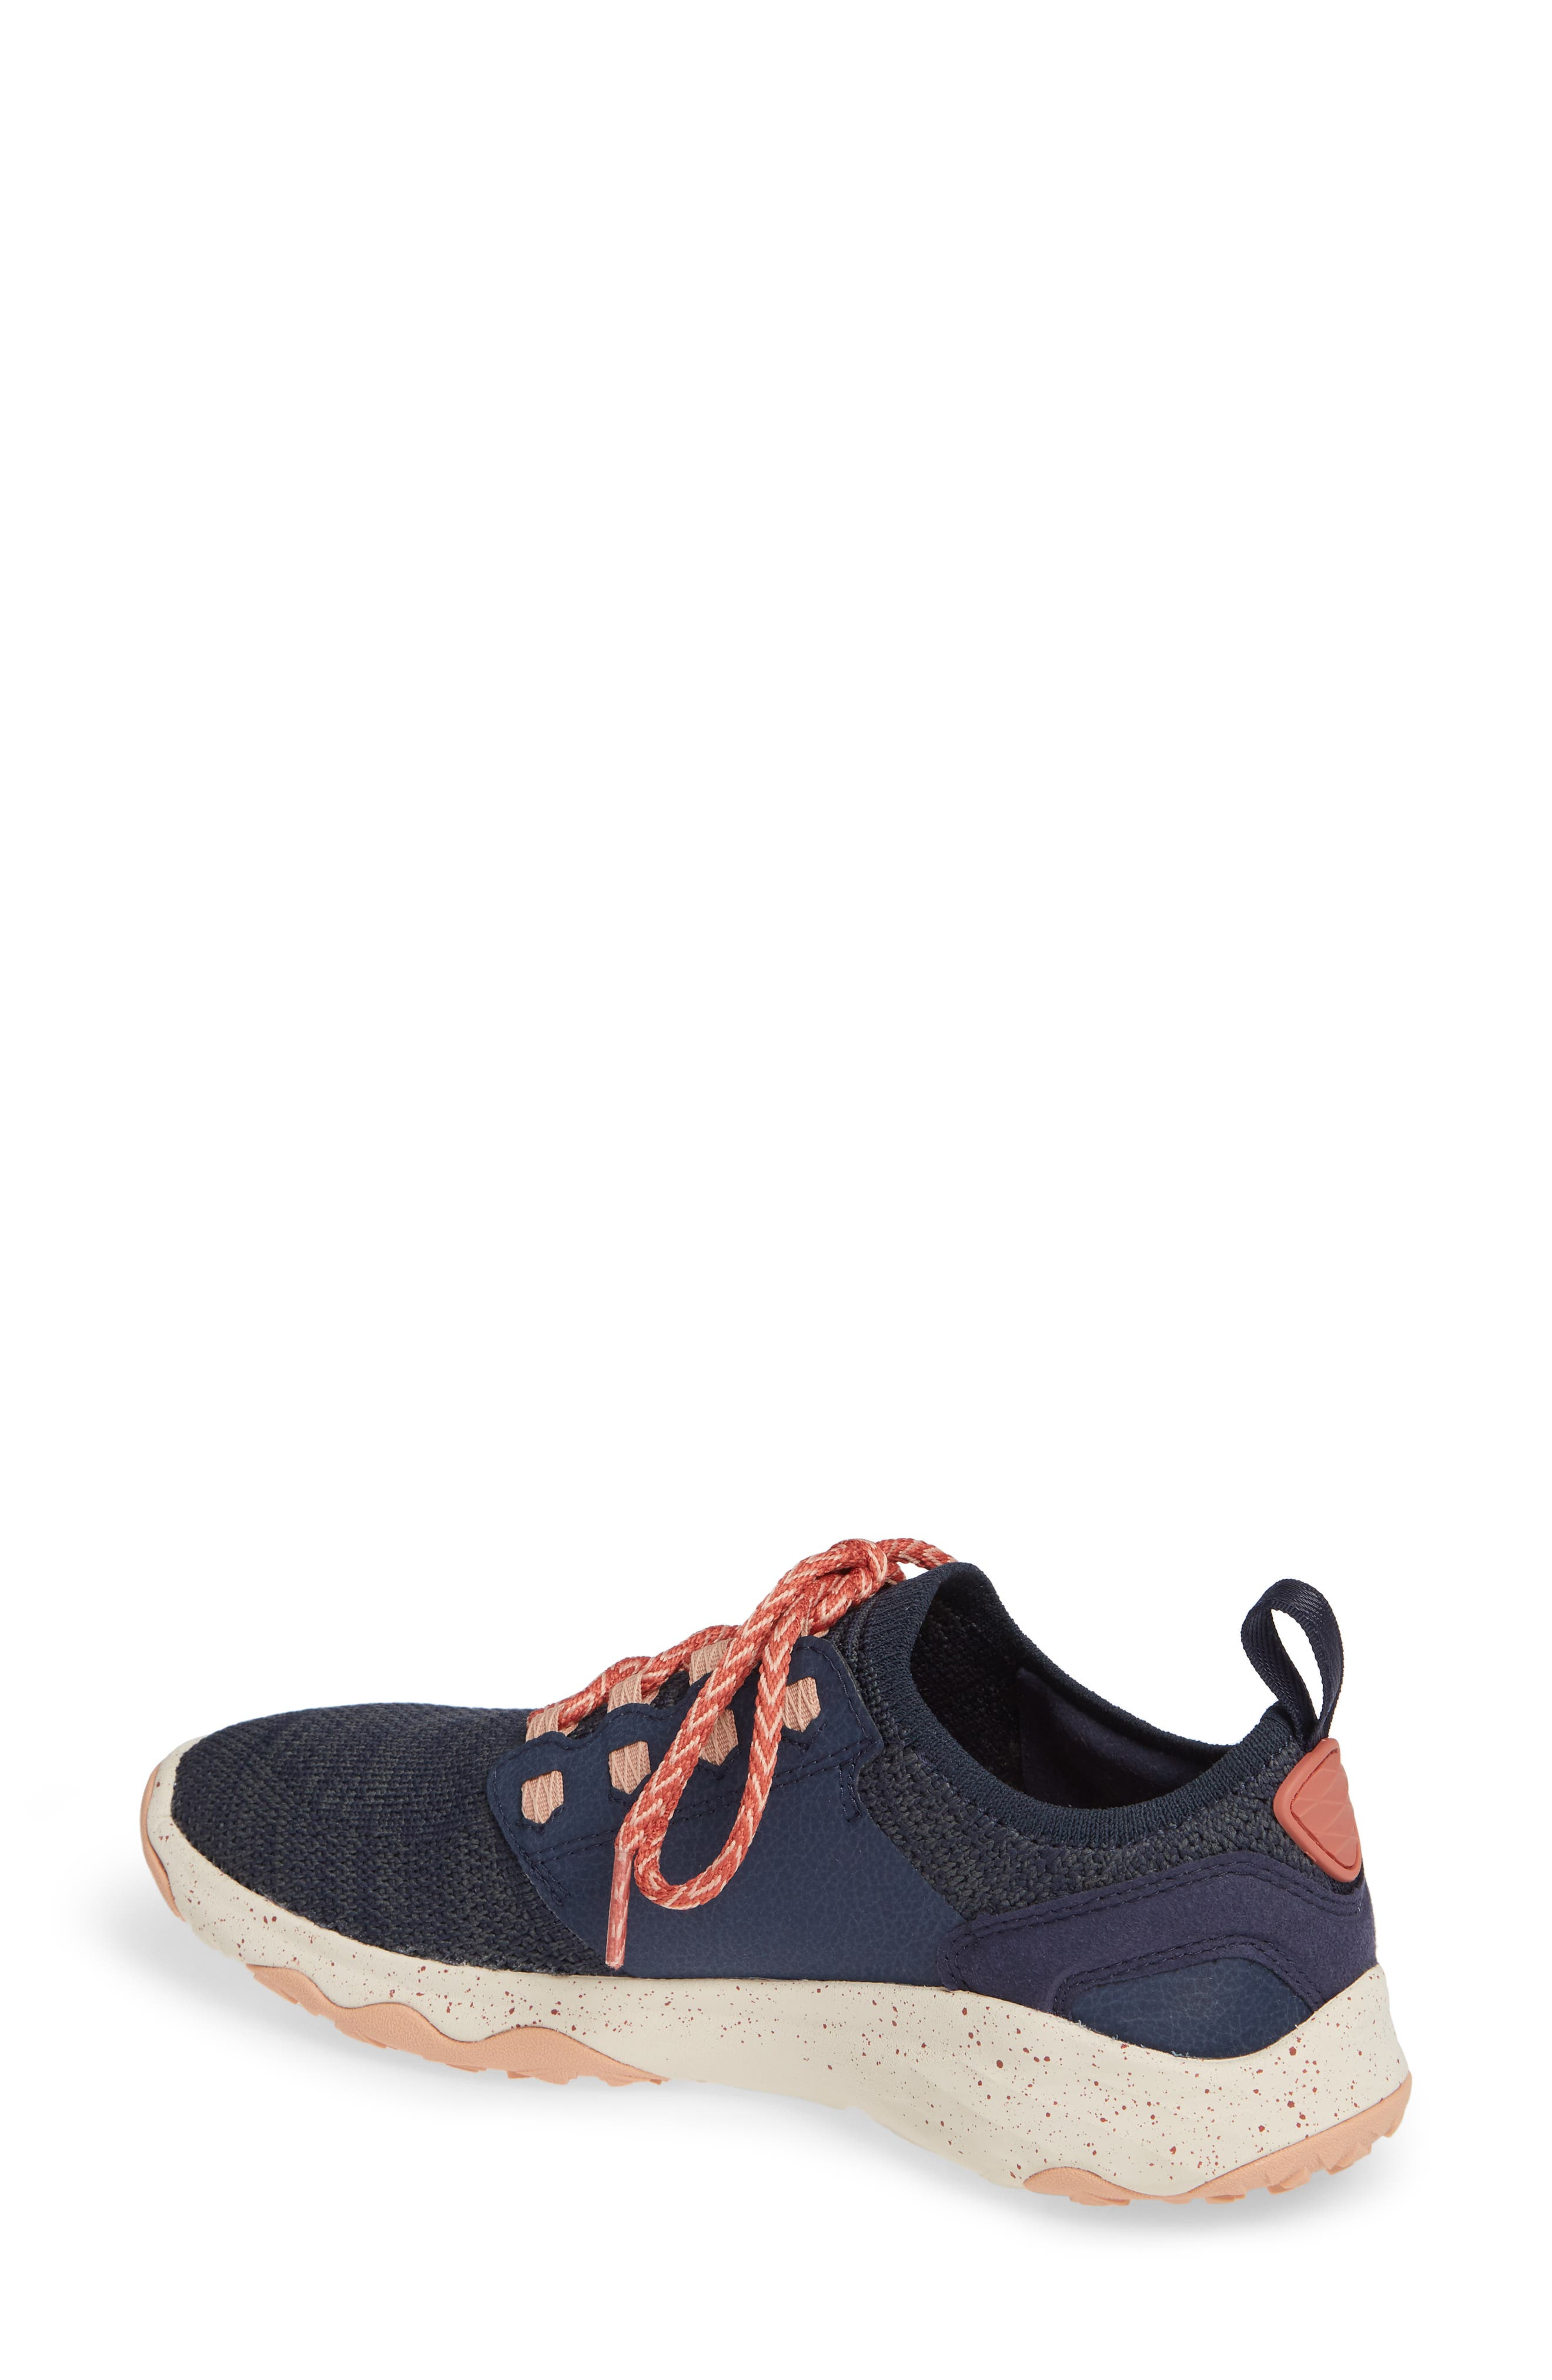 Arrowood 2 Waterproof Knit Sneaker,                             Alternate thumbnail 2, color,                             MIDNIGHT NAVY FABRIC